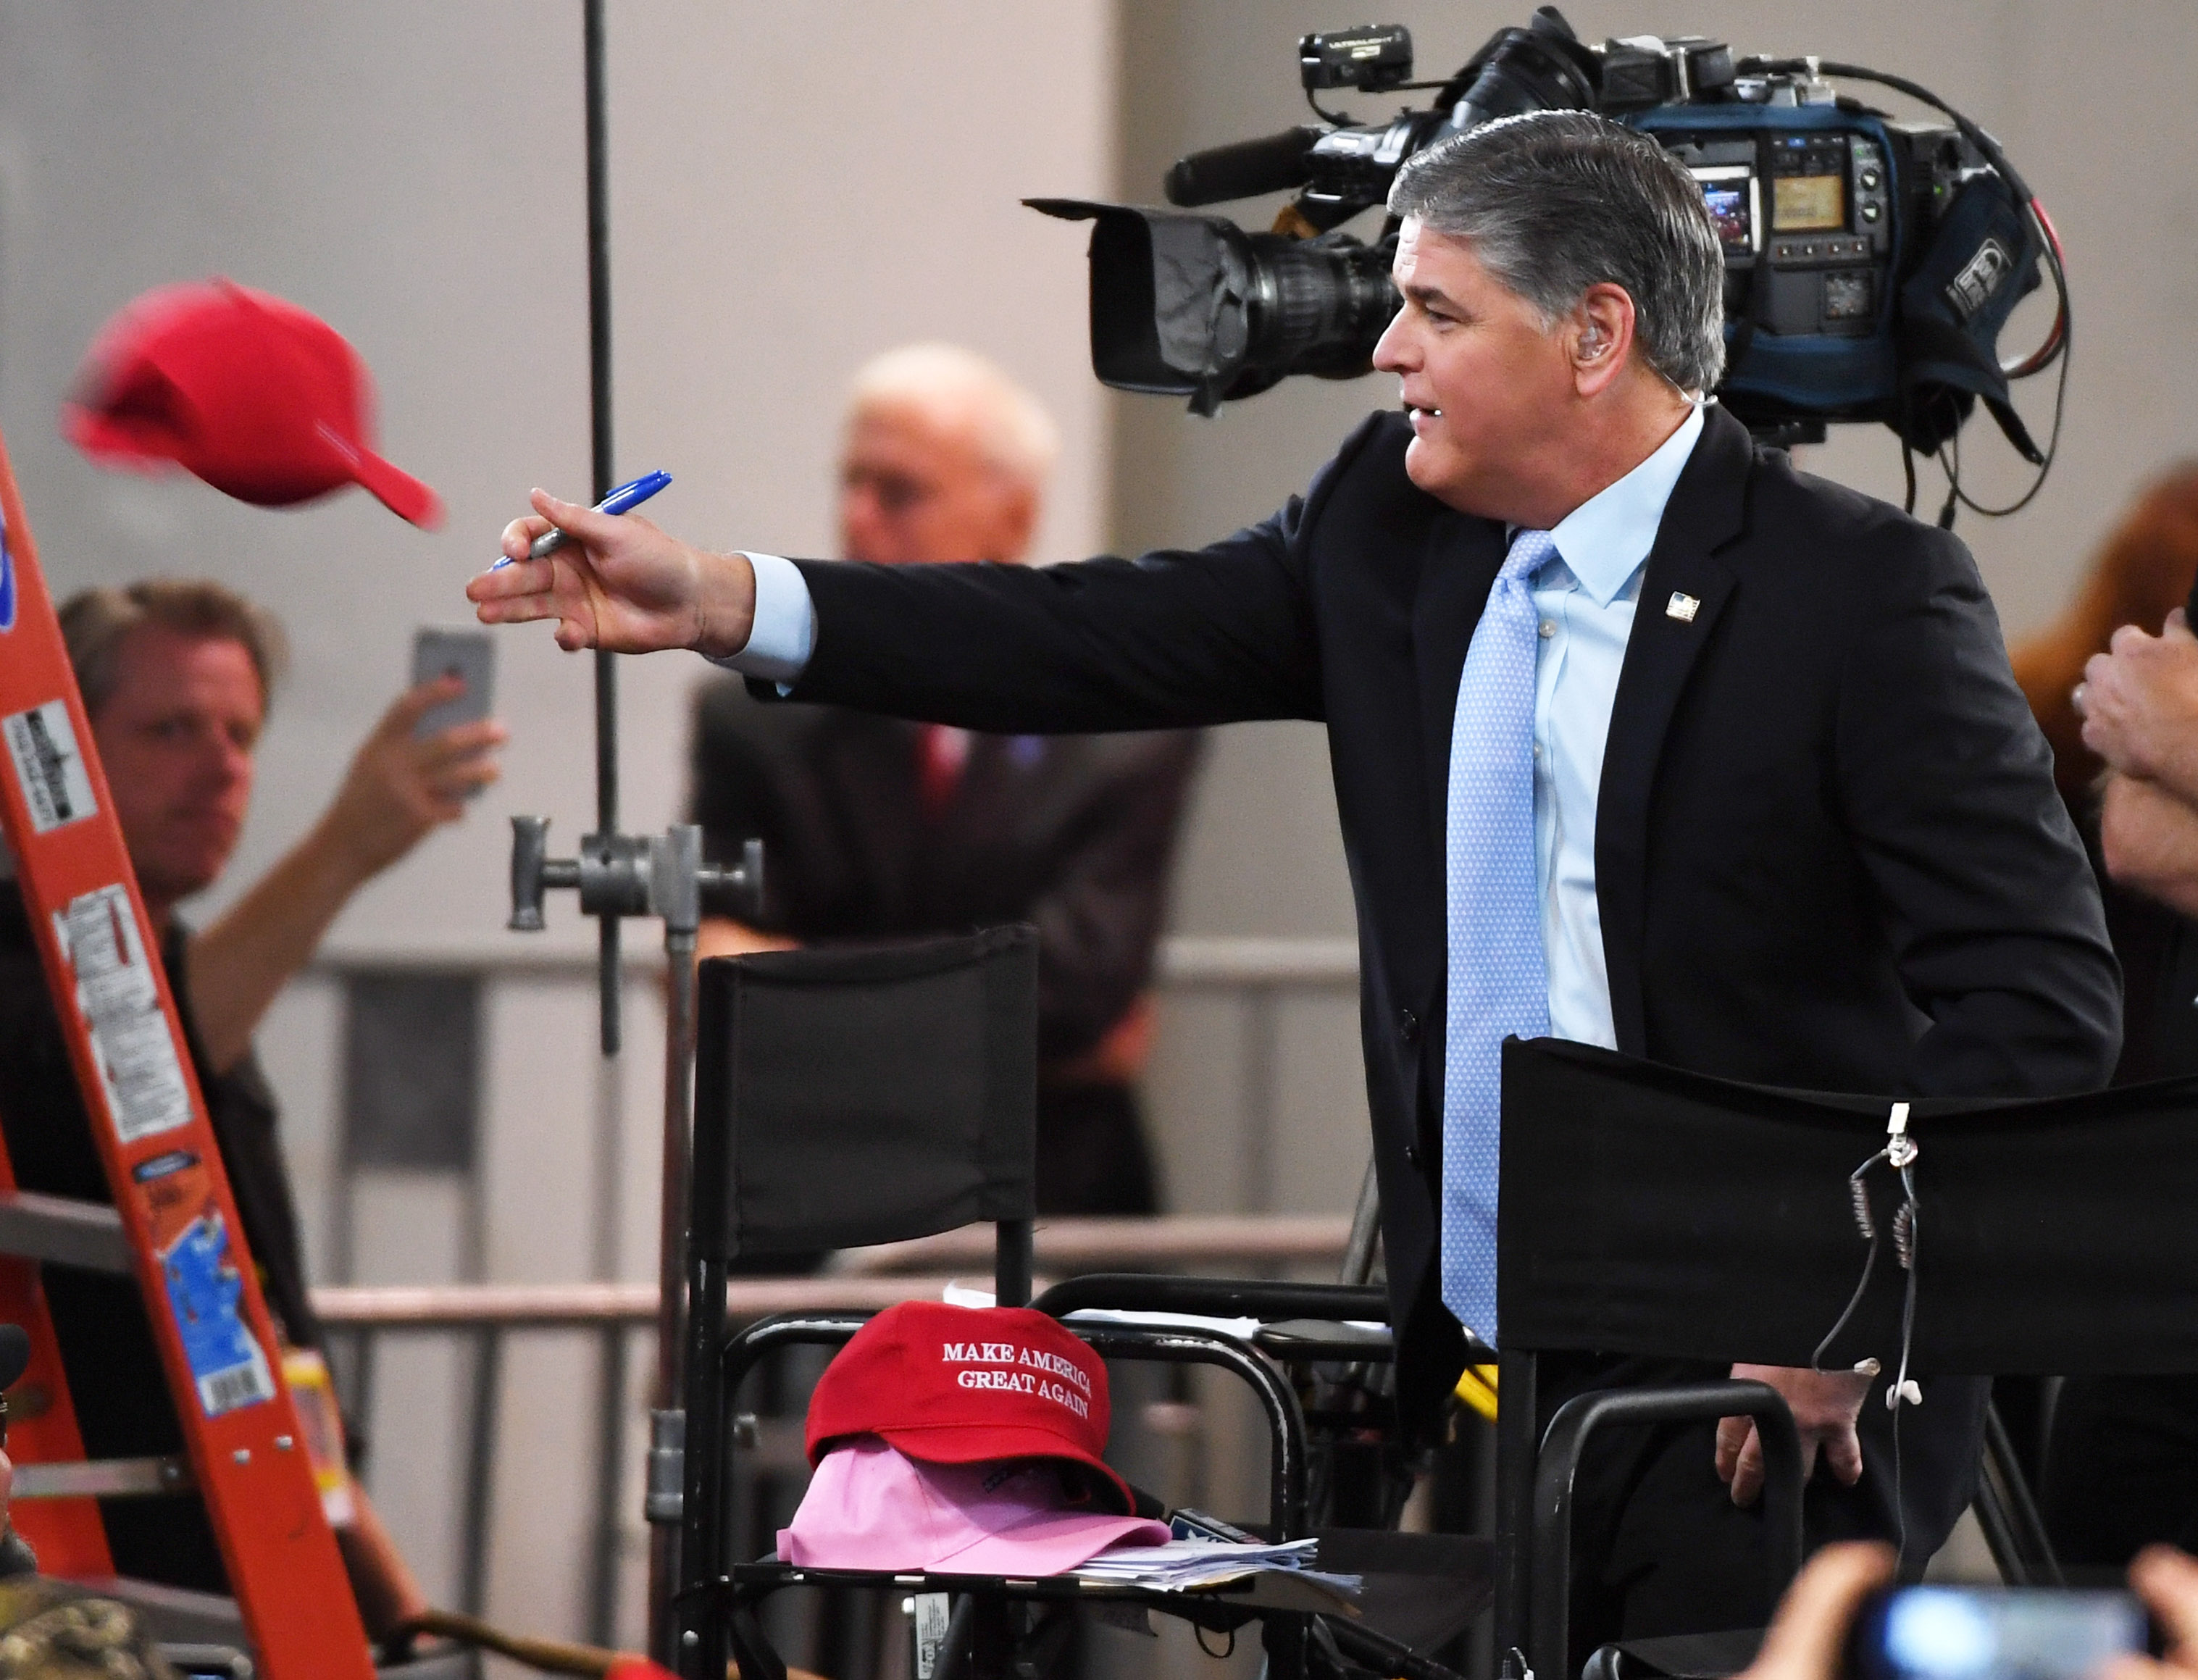 LAS VEGAS, NV - SEPTEMBER 20: Fox News Channel and radio talk show host Sean Hannity throws a Trump hat that he autographed to an attendee before a Donald Trump campaign rally at the Las Vegas Convention Center on September 20, 2018 in Las Vegas, Nevada. Trump is in town to support the re-election campaign for U.S. Sen. Dean Heller (R-NV) as well as Nevada Attorney General and Republican gubernatorial candidate Adam Laxalt and candidate for Nevada's 3rd House District Danny Tarkanian and 4th House District Cresent Hardy. (Photo by Ethan Miller/Getty Images)